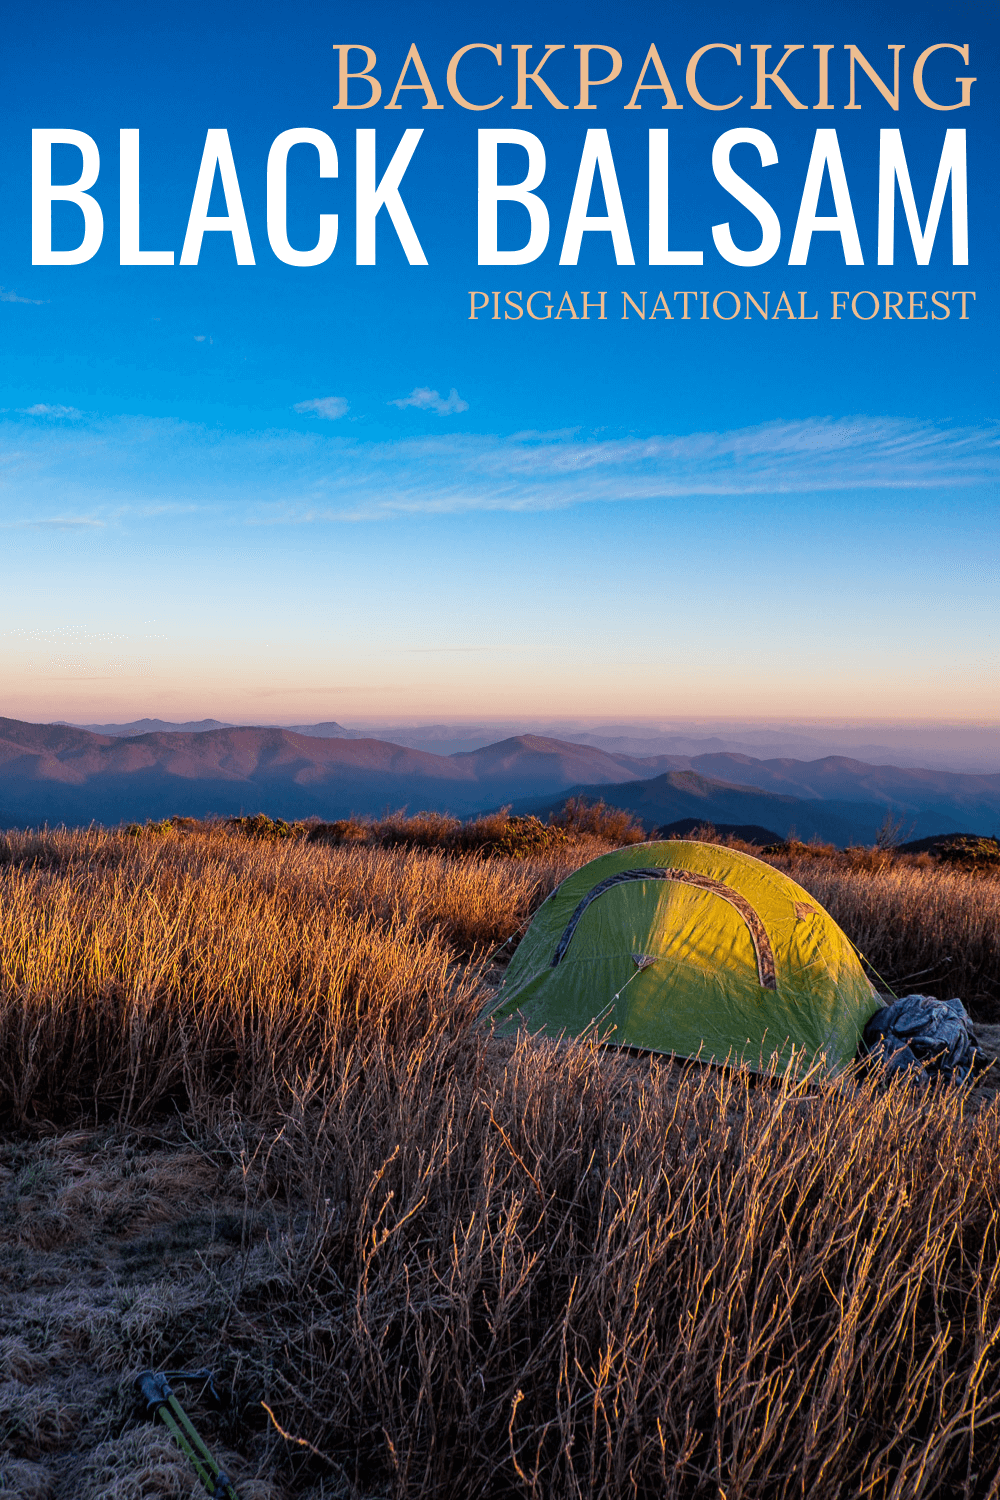 Backpacking at Black Balsam Knob is a popular outdoor activity. But there are lots of rules about camping in Pisgah National Forest. Find out where you can camp and what you can expect!